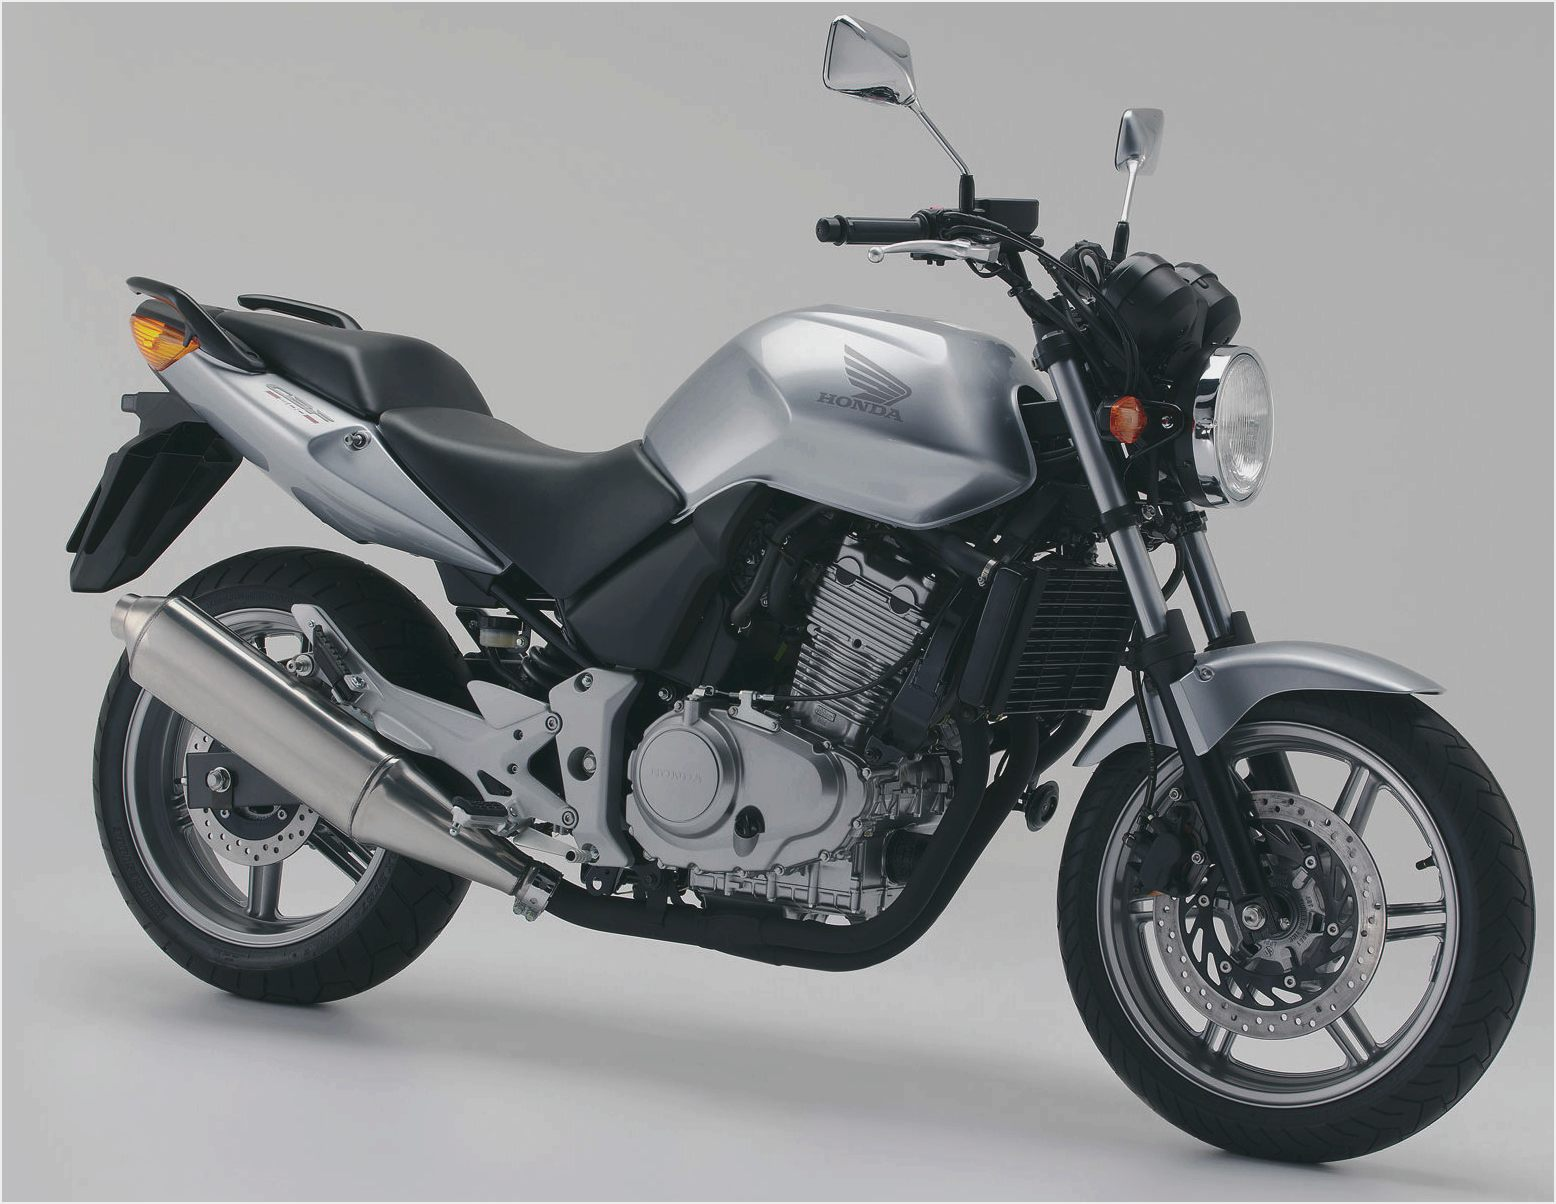 2004 honda cbf 500 pics specs and information. Black Bedroom Furniture Sets. Home Design Ideas